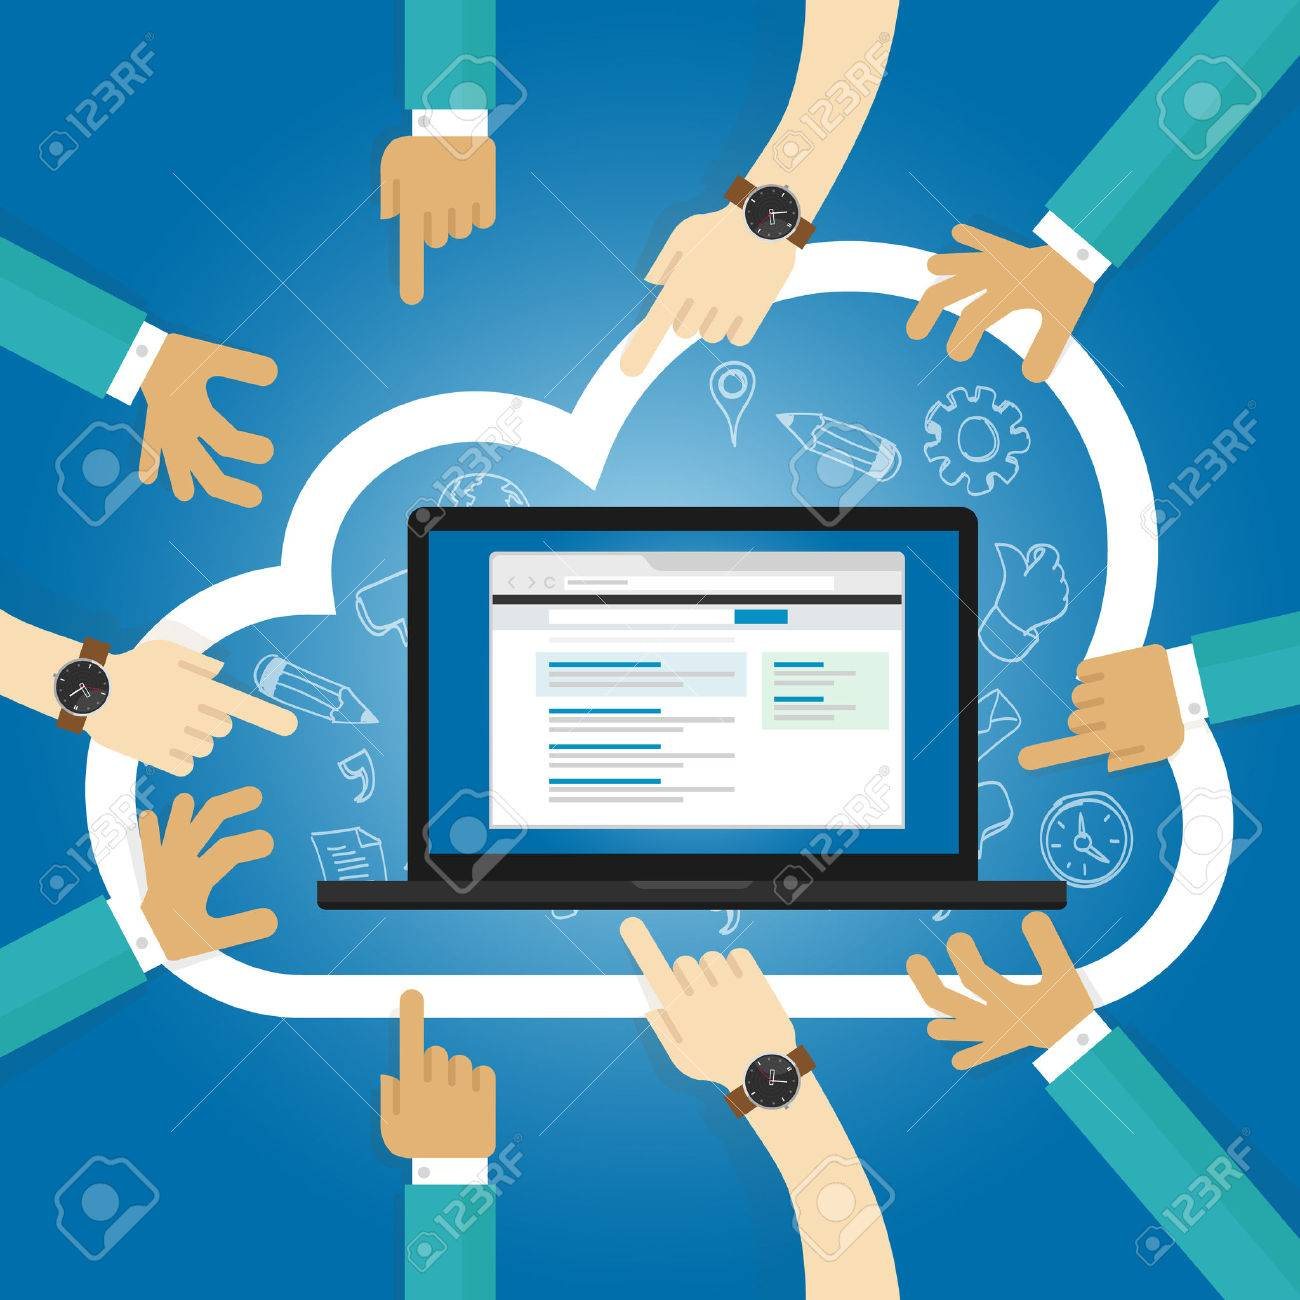 SaaS Software as a service cloud application access internet subscription basis centrally hosted on-demand software vector - 53582702